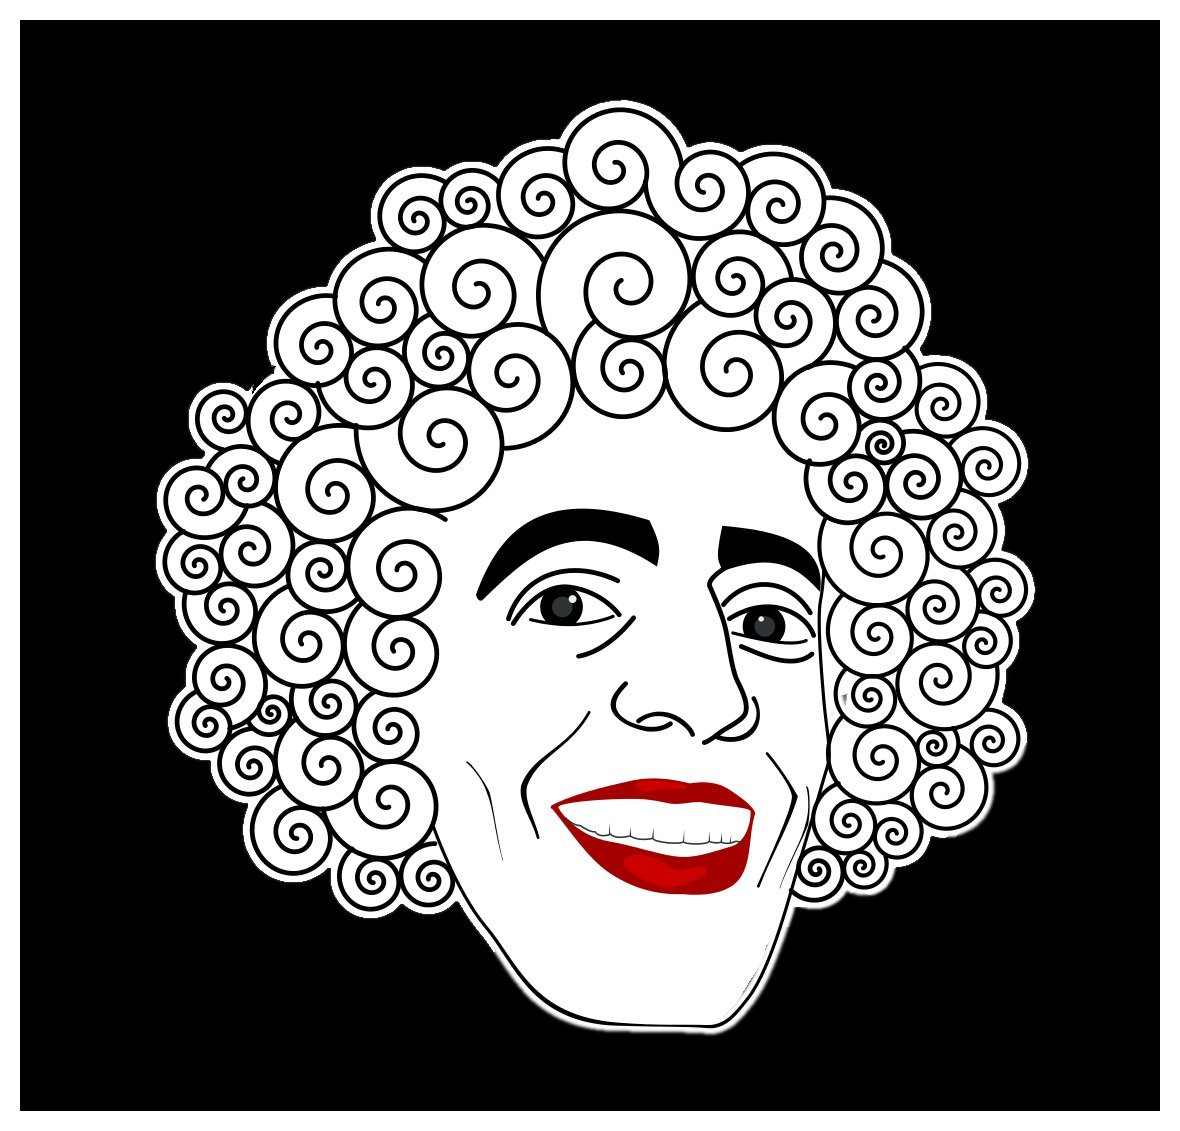 Amazon com comedy sticker creepy evil clown face crazy psycho weird strange freak fun gift everything else